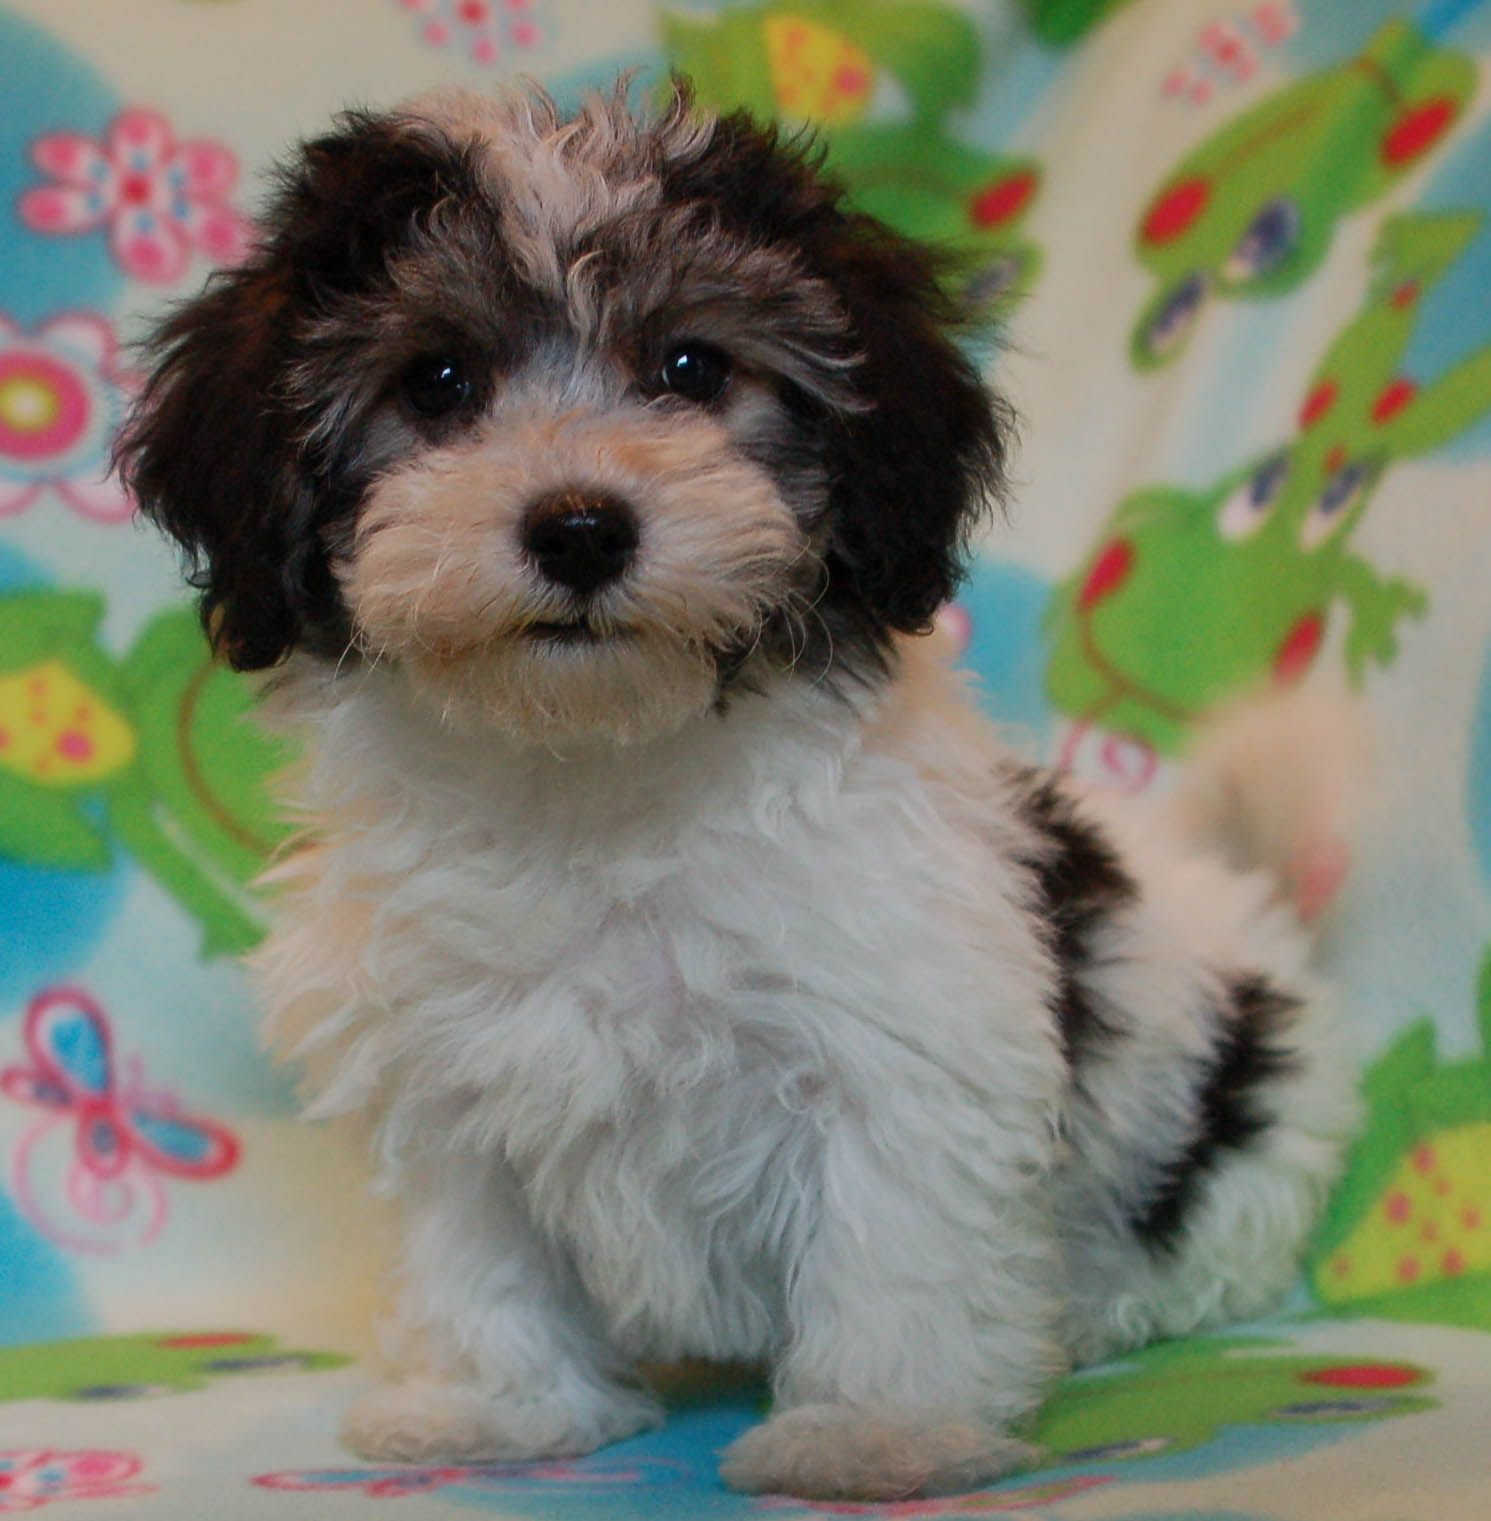 havanese, this is my next puppy!! So so darn cute and